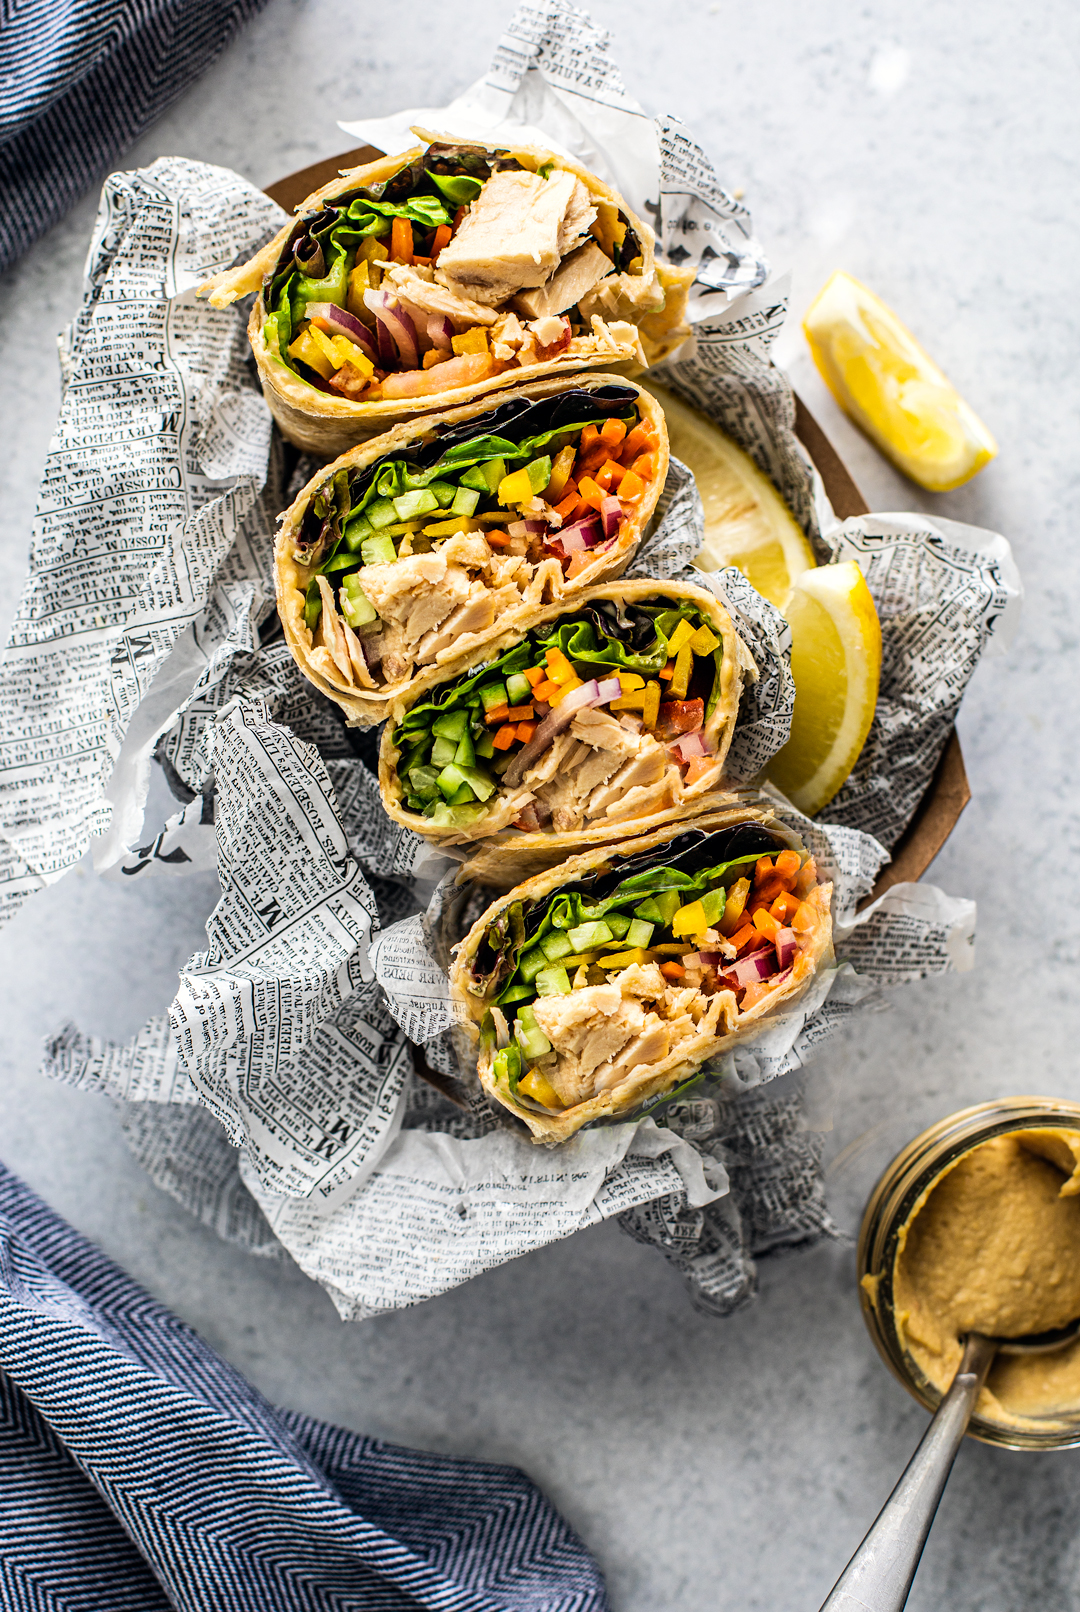 Overhead shot of colorful veggie-filled tuna wraps lined up with side of hummus.